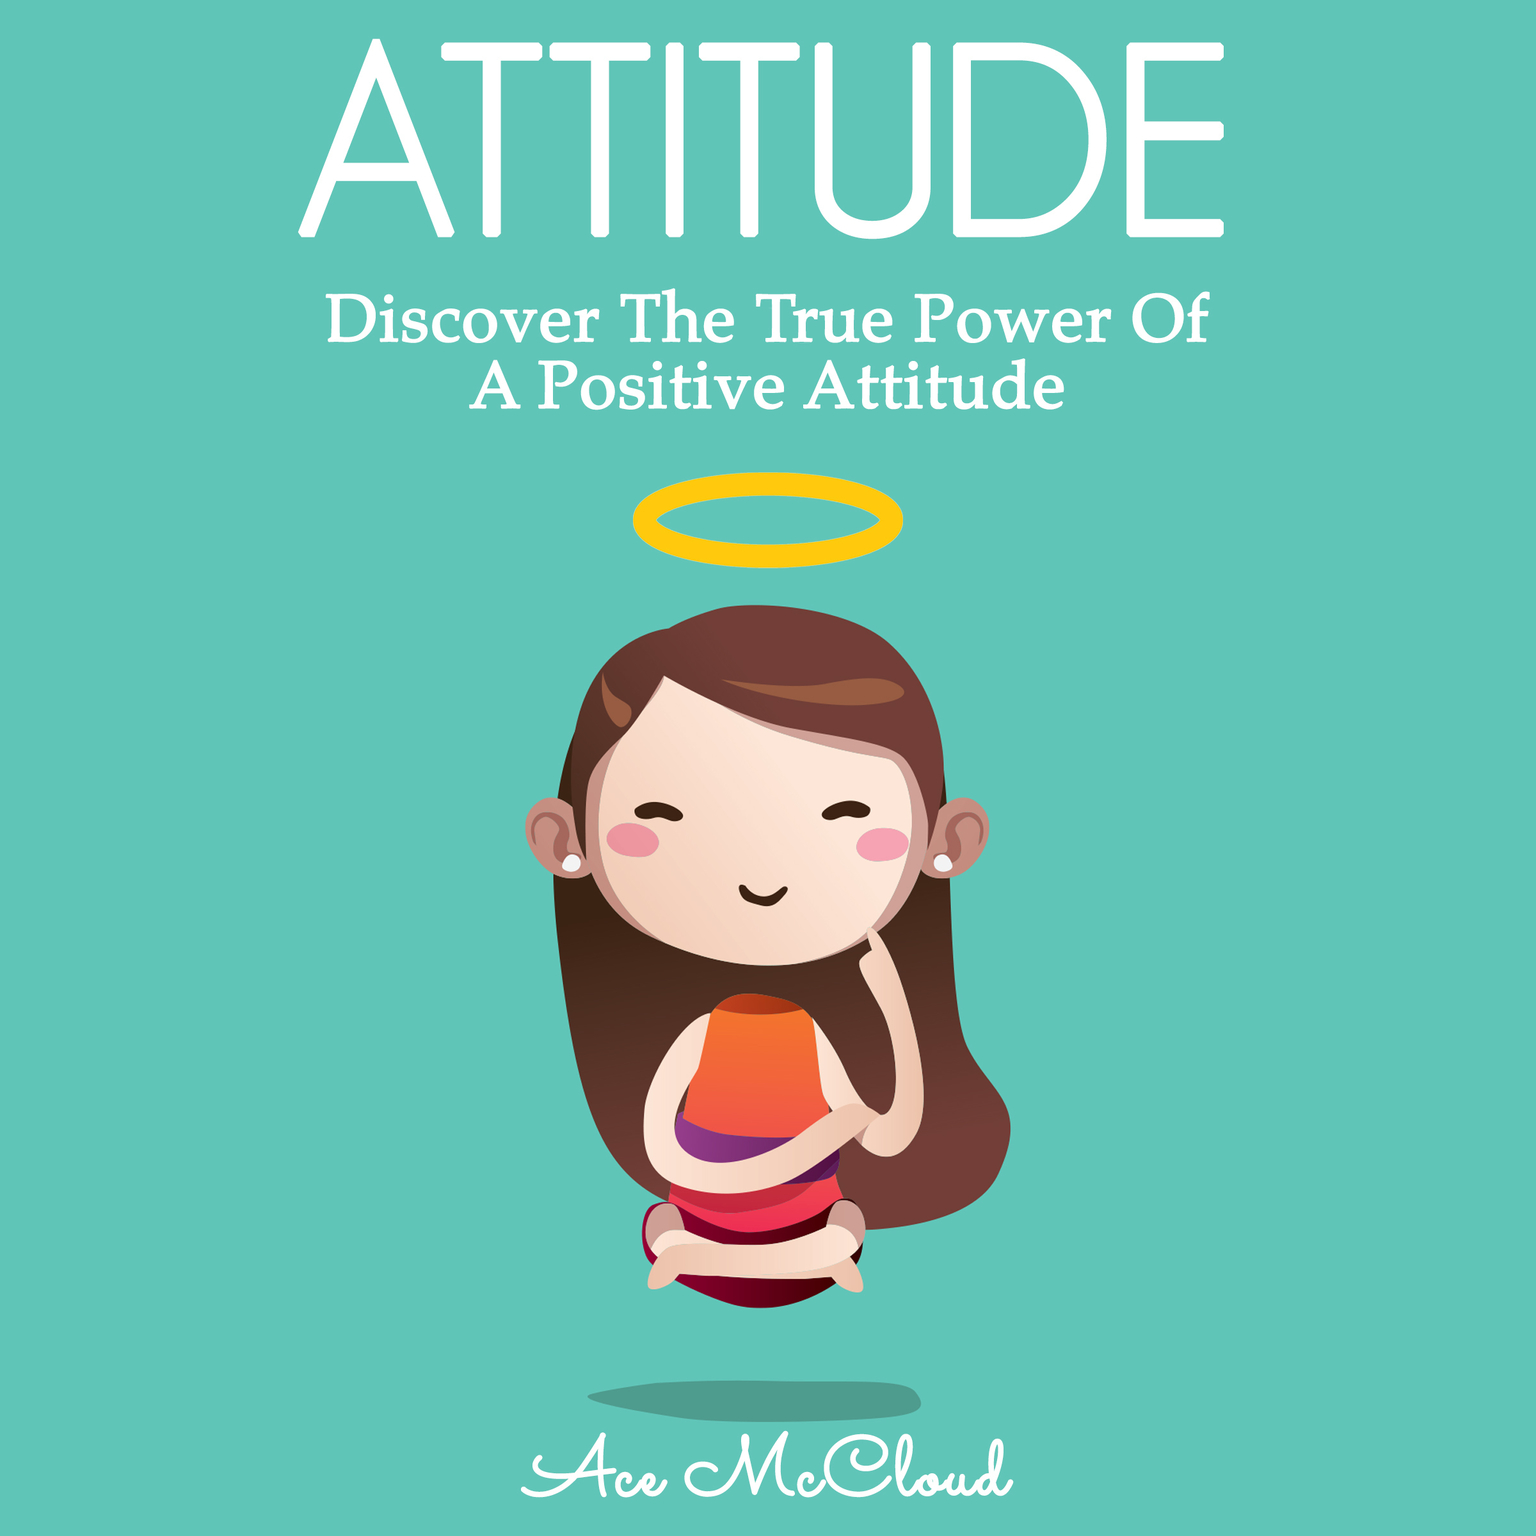 Attitude: Discover The True Power Of A Positive Attitude Audiobook, by Ace McCloud